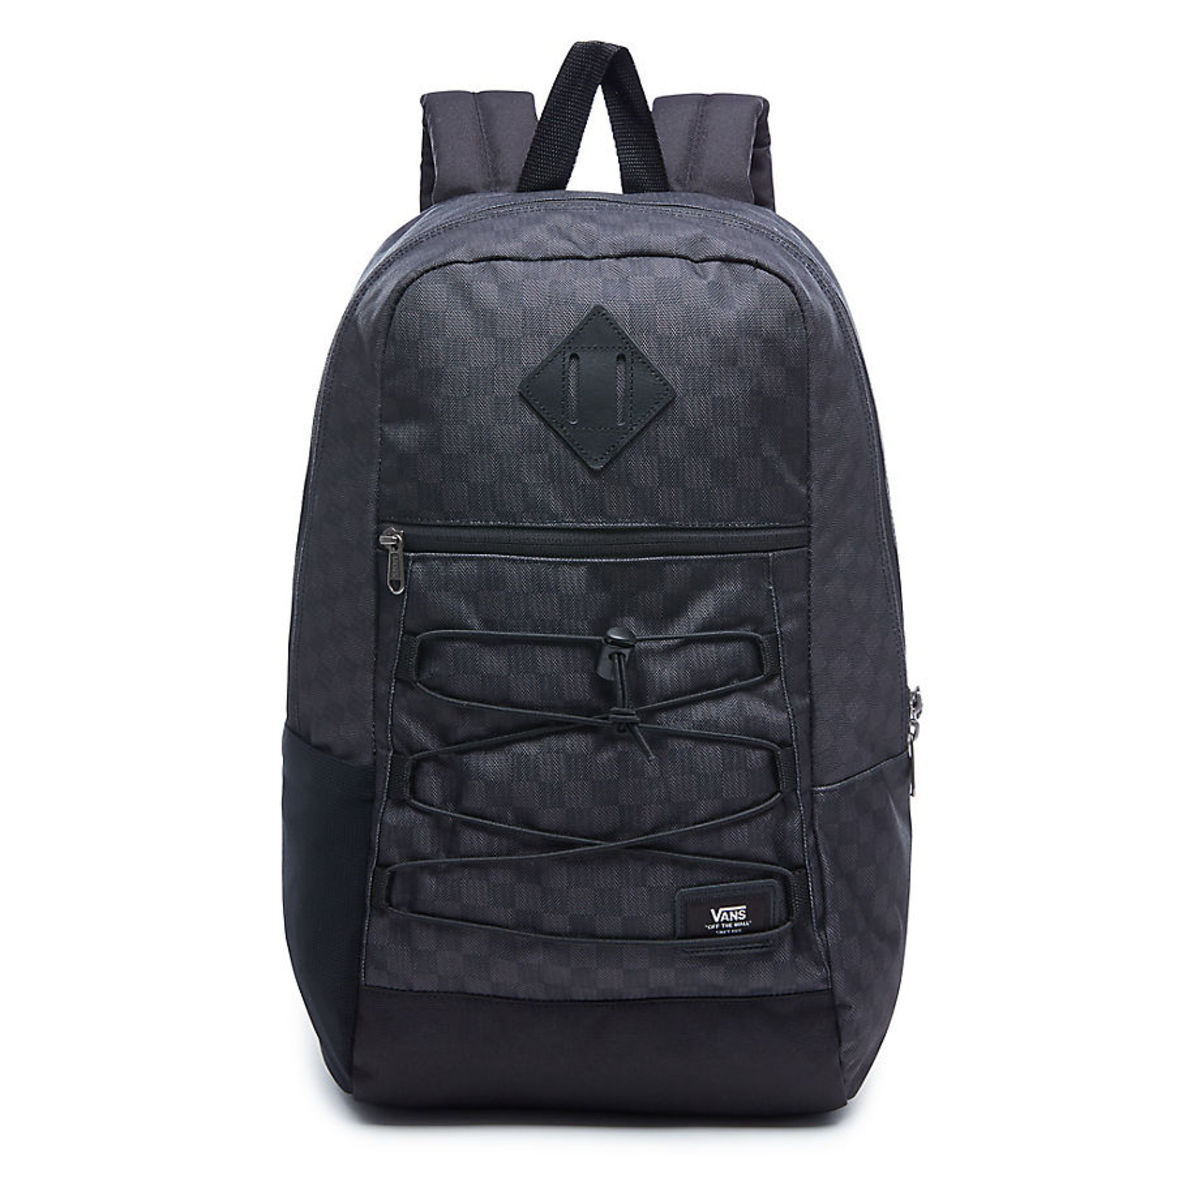 batoh VANS - MN SNAG BACKPACK - BlackCharcoal - VA3HCBBA5